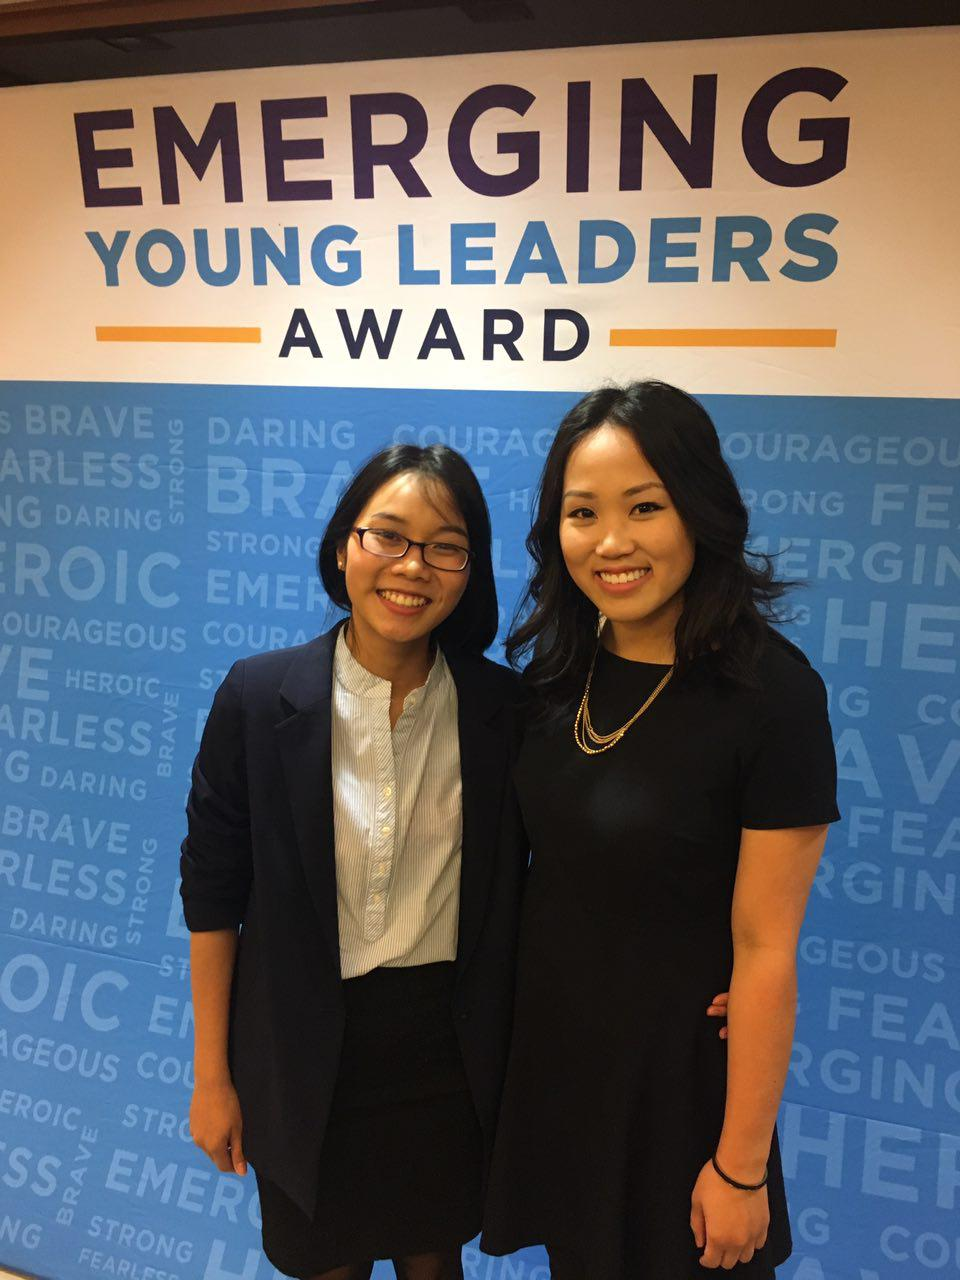 Quyên Lưu (left), of Todocabi.vn, is honored as one of ten global emerging young leaders by the U.S. State Department on May 4, 2017. (Photo: Loa/Nhựt Phó)